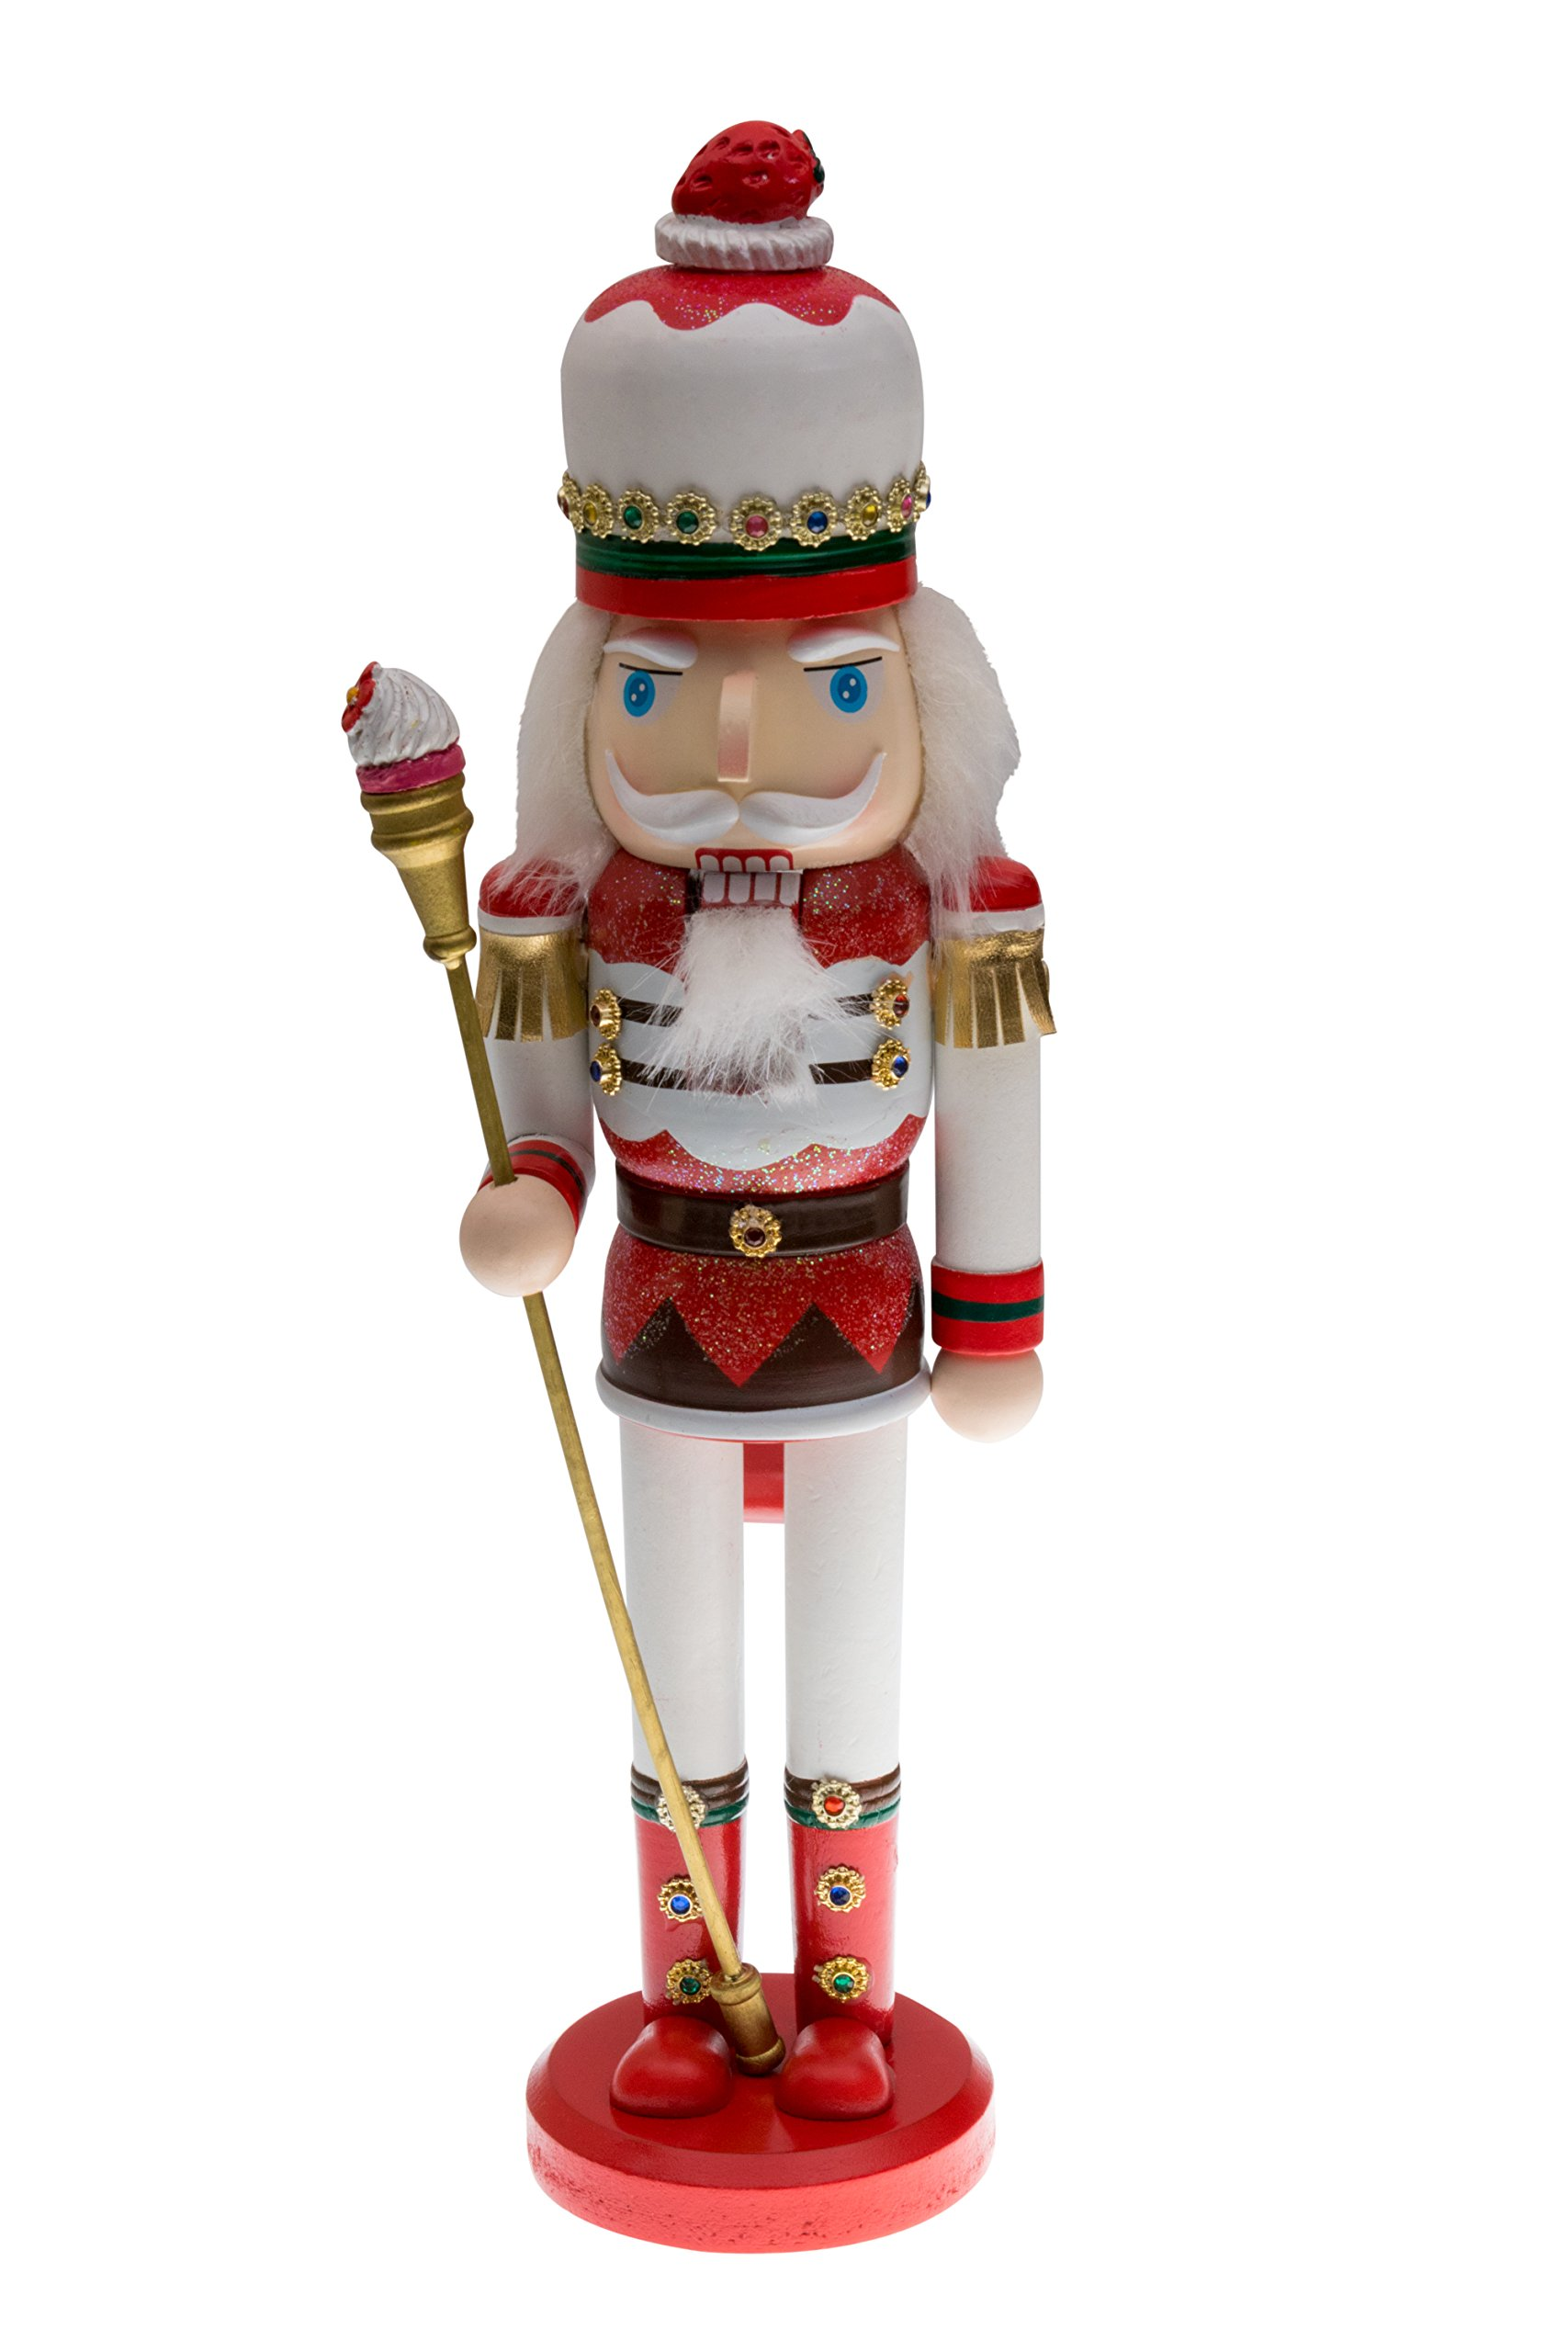 Candyland Strawberry King Nutcracker | Red and White Uniform with Strawberry Hat | Holding Cupcake Scepter | Festive Christmas Decor | Unique Addition for Any Collection | 100% Wood | 15'' Tall